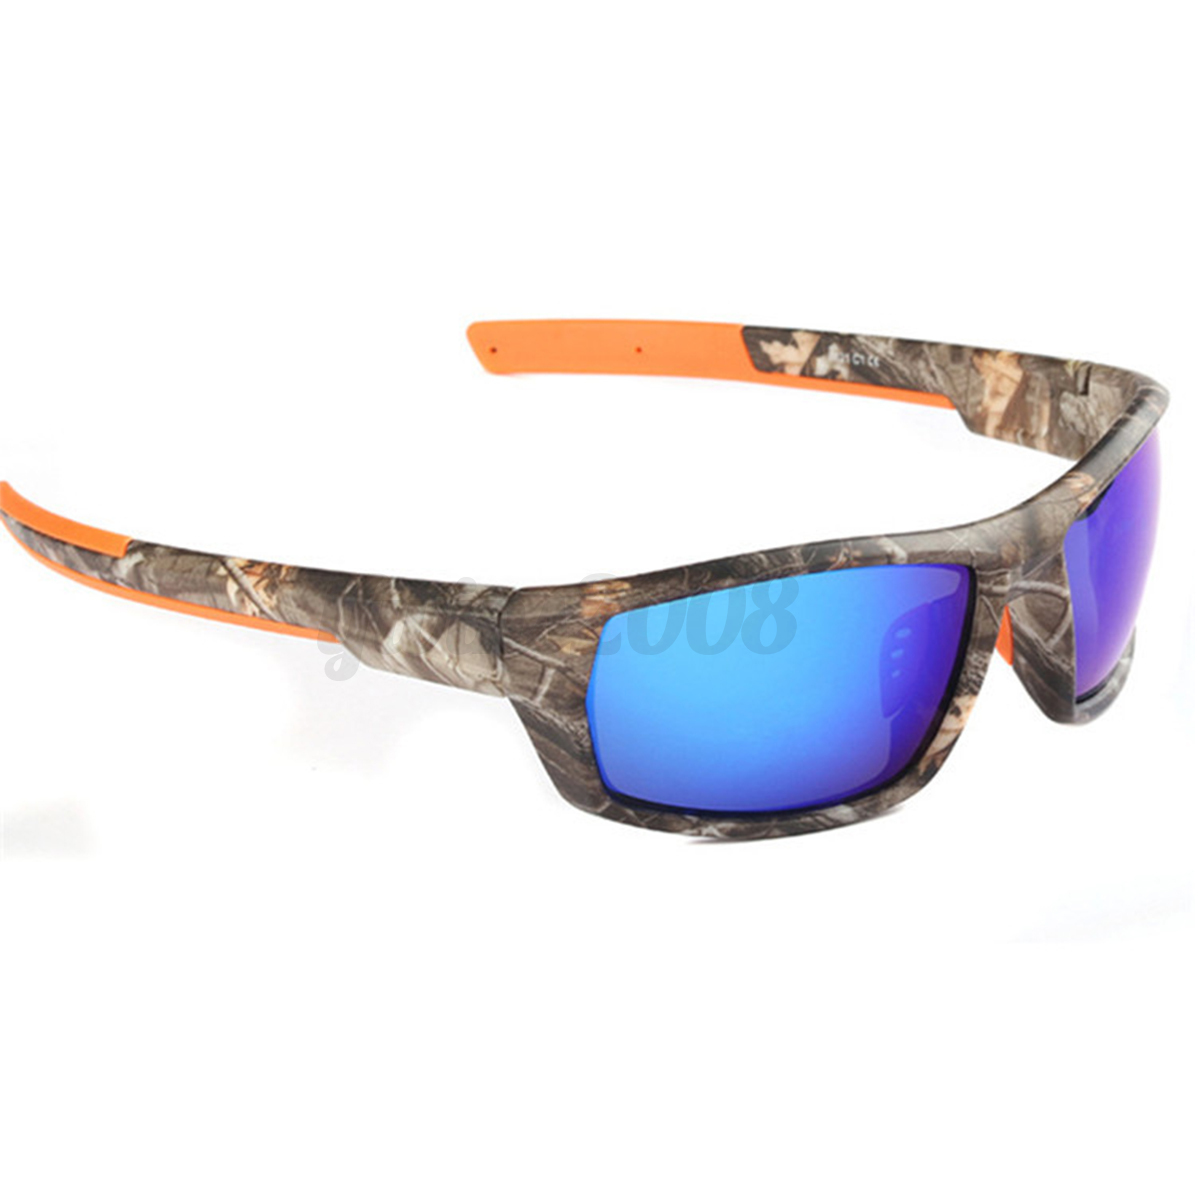 Are All Polarized D Glasses The Same